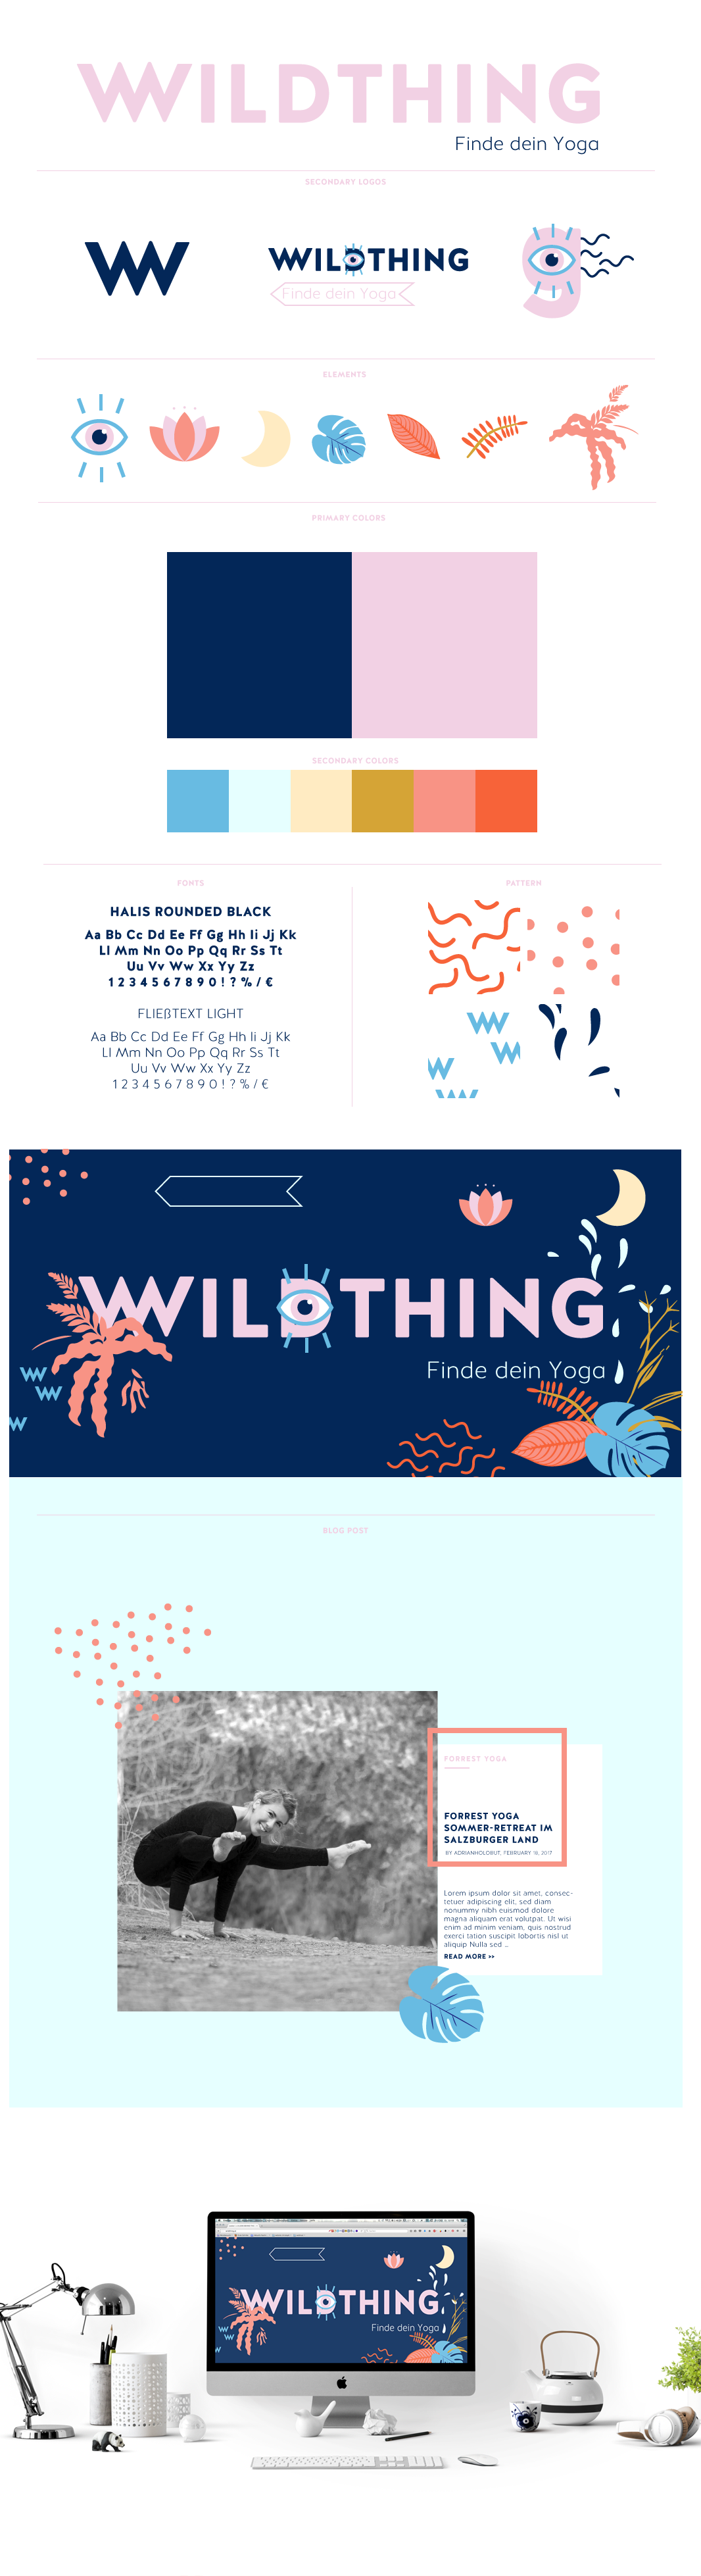 WILDTHING - Find your yoga by anna habaschy - Creative Work - $i